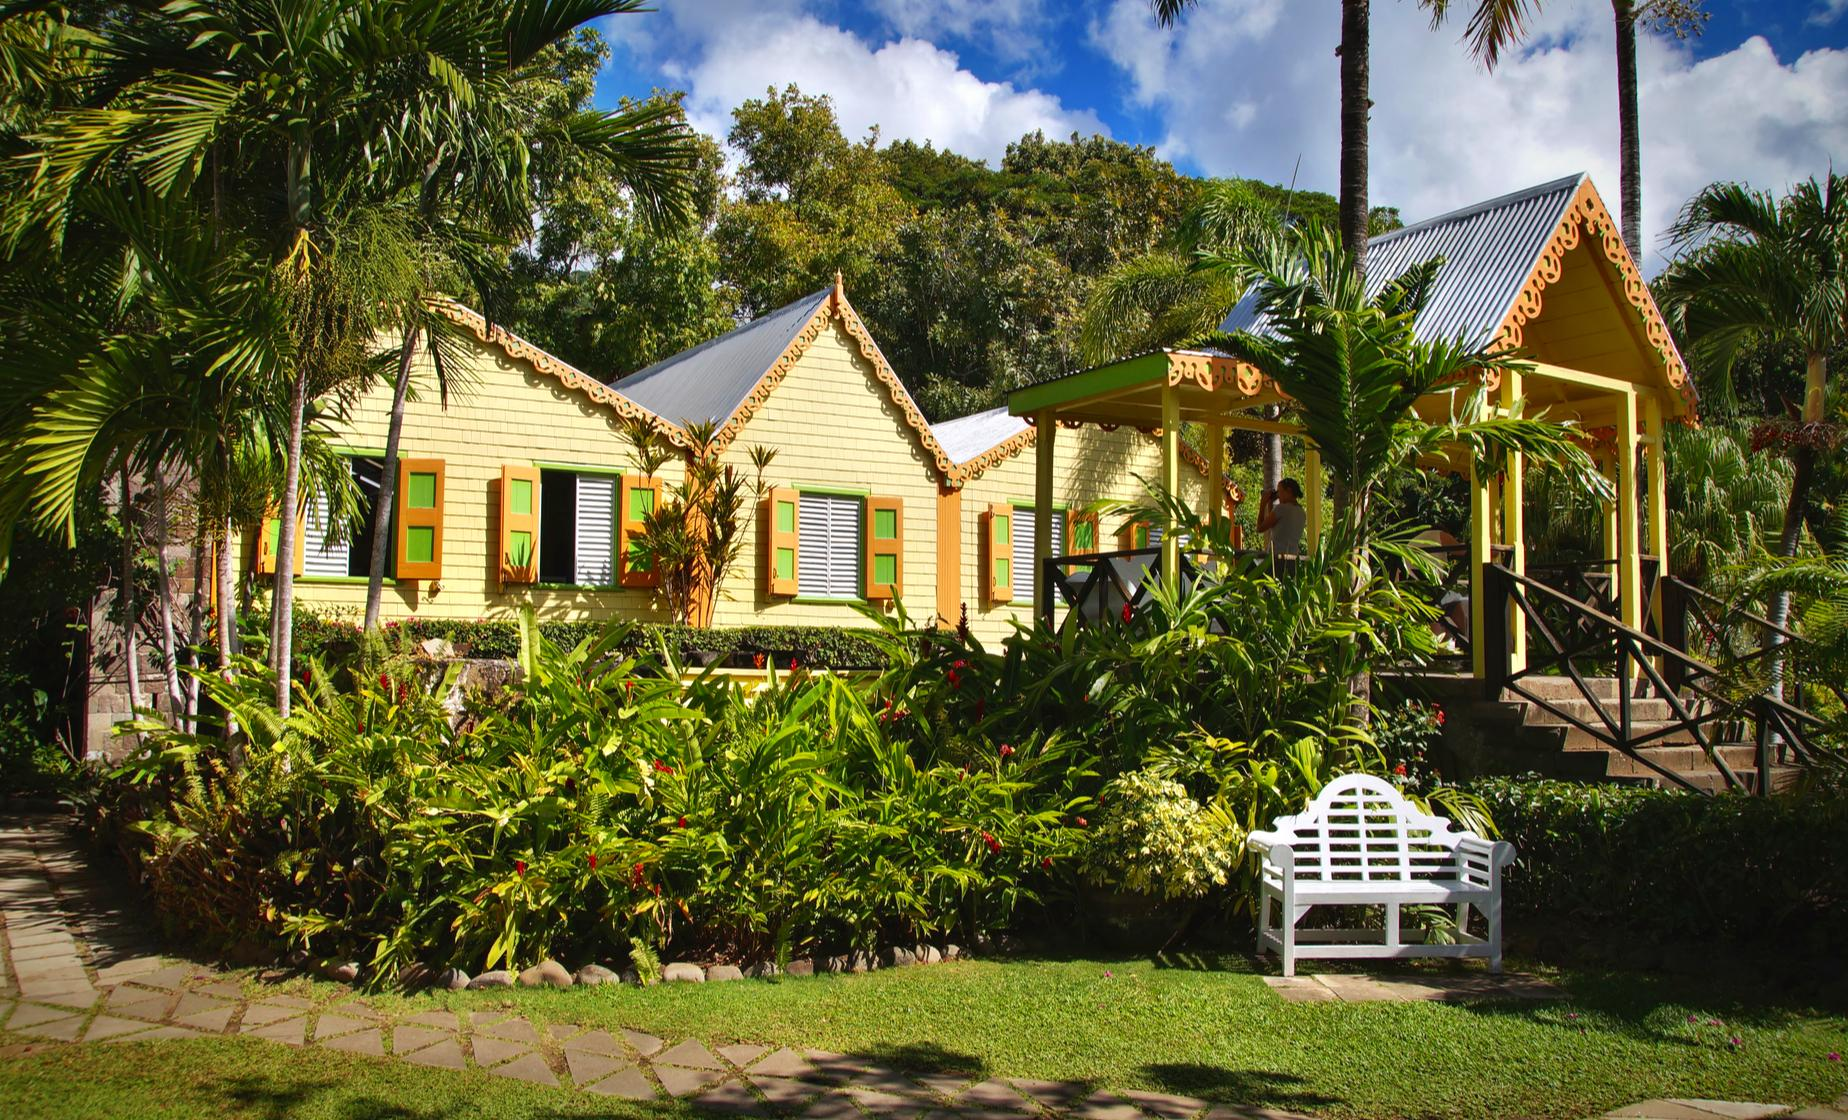 St Kitts Day Tour through Basseterre, Caribelle Batik (Romney Manor, Clay Villa Estate)